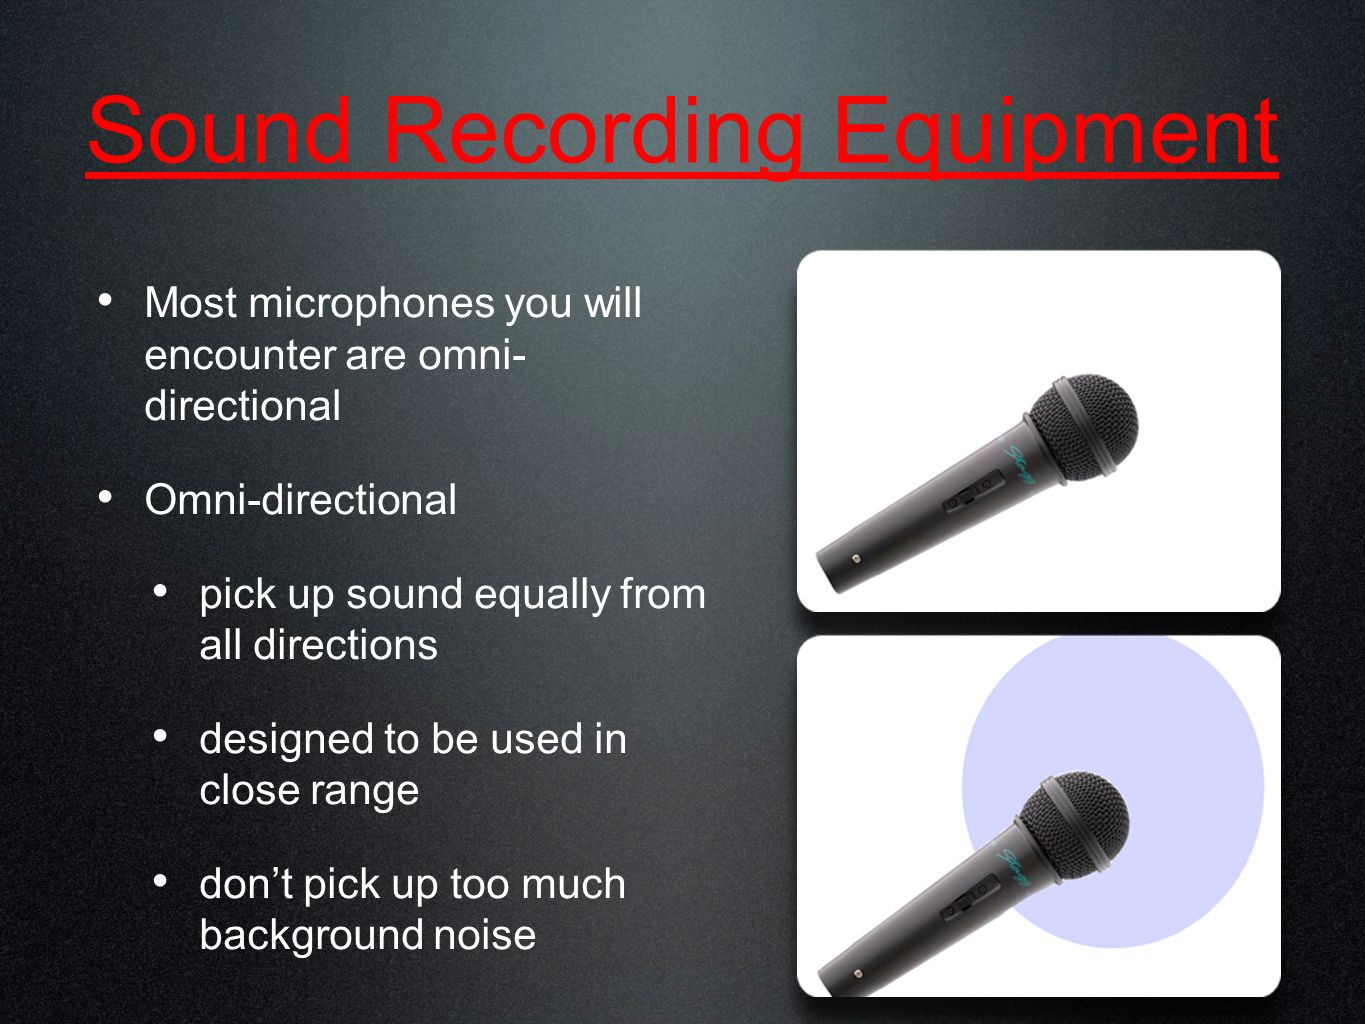 Sound Recording Equipment Most microphones you will encounter are omni- directional Omni-directional pick up sound equally from all directions designed to be used in close range don't pick up too much background noise